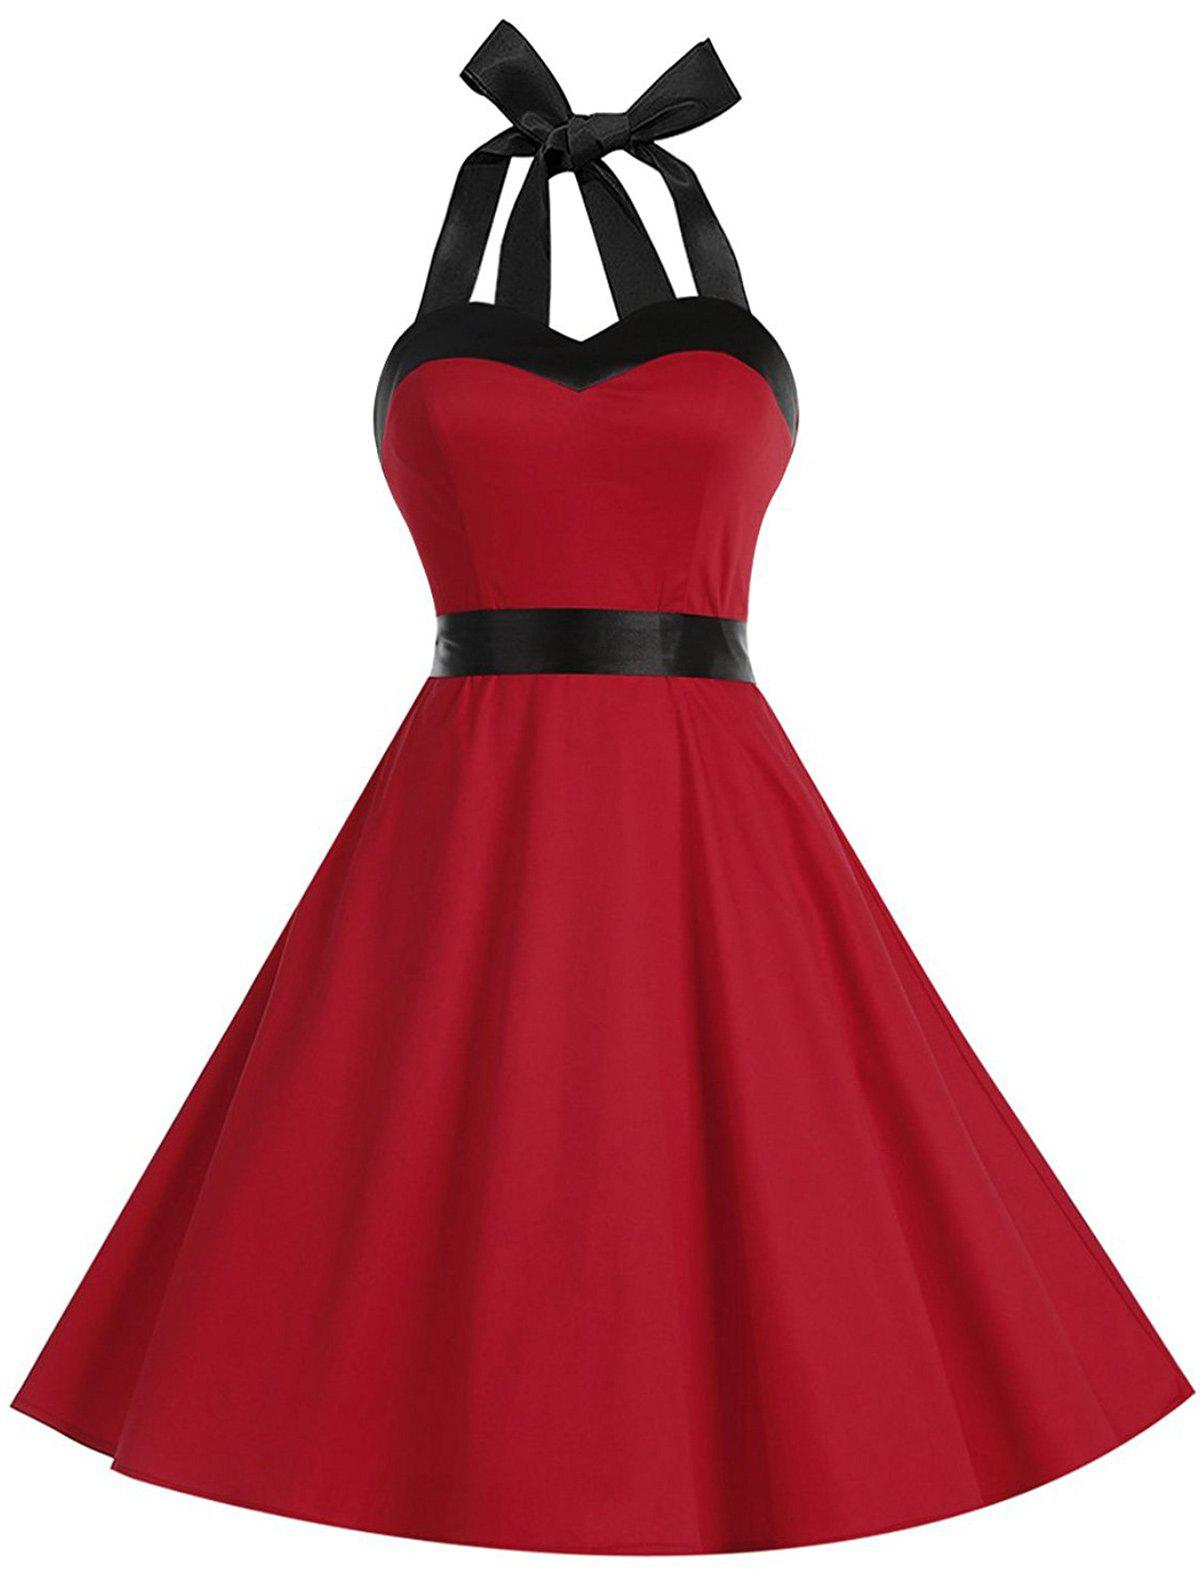 Lace Up Halter Two Tone Vintage Dress two tone swing lace dress